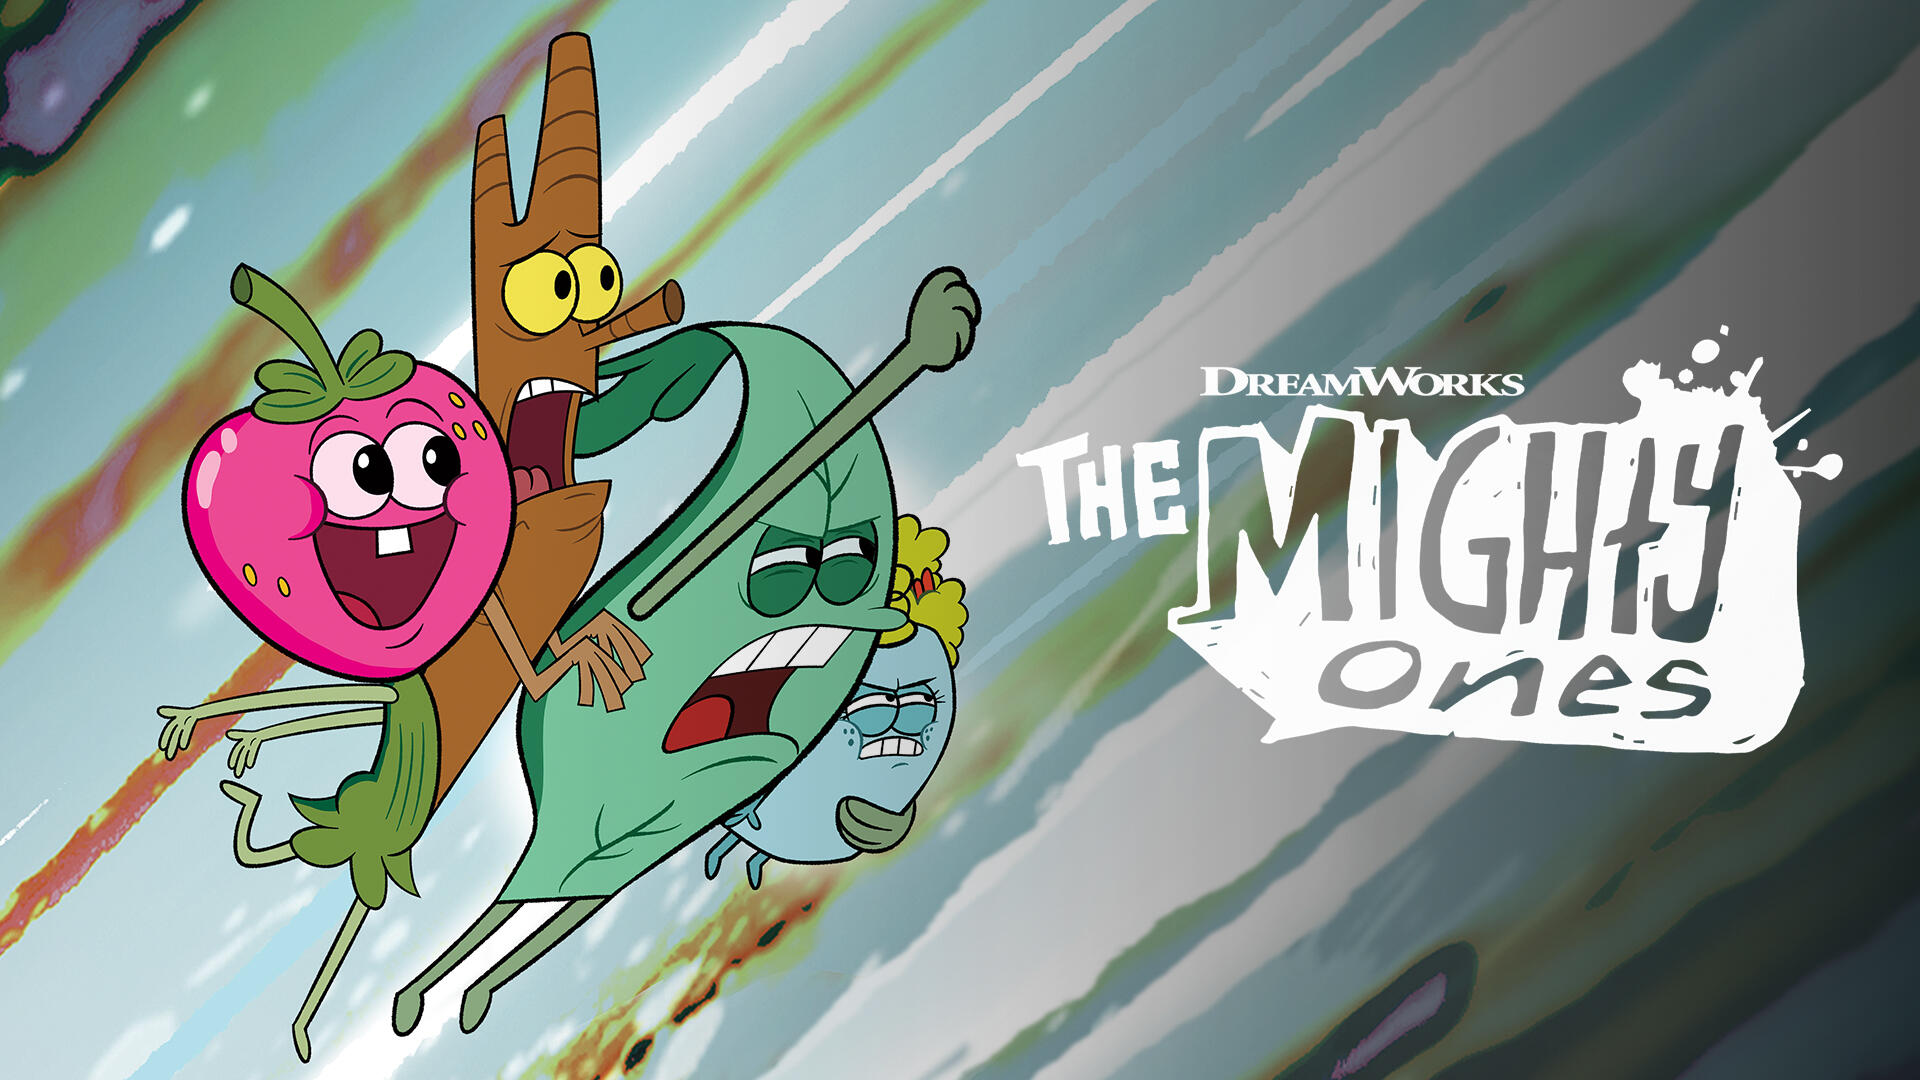 The-Mighty-Ones_16x9